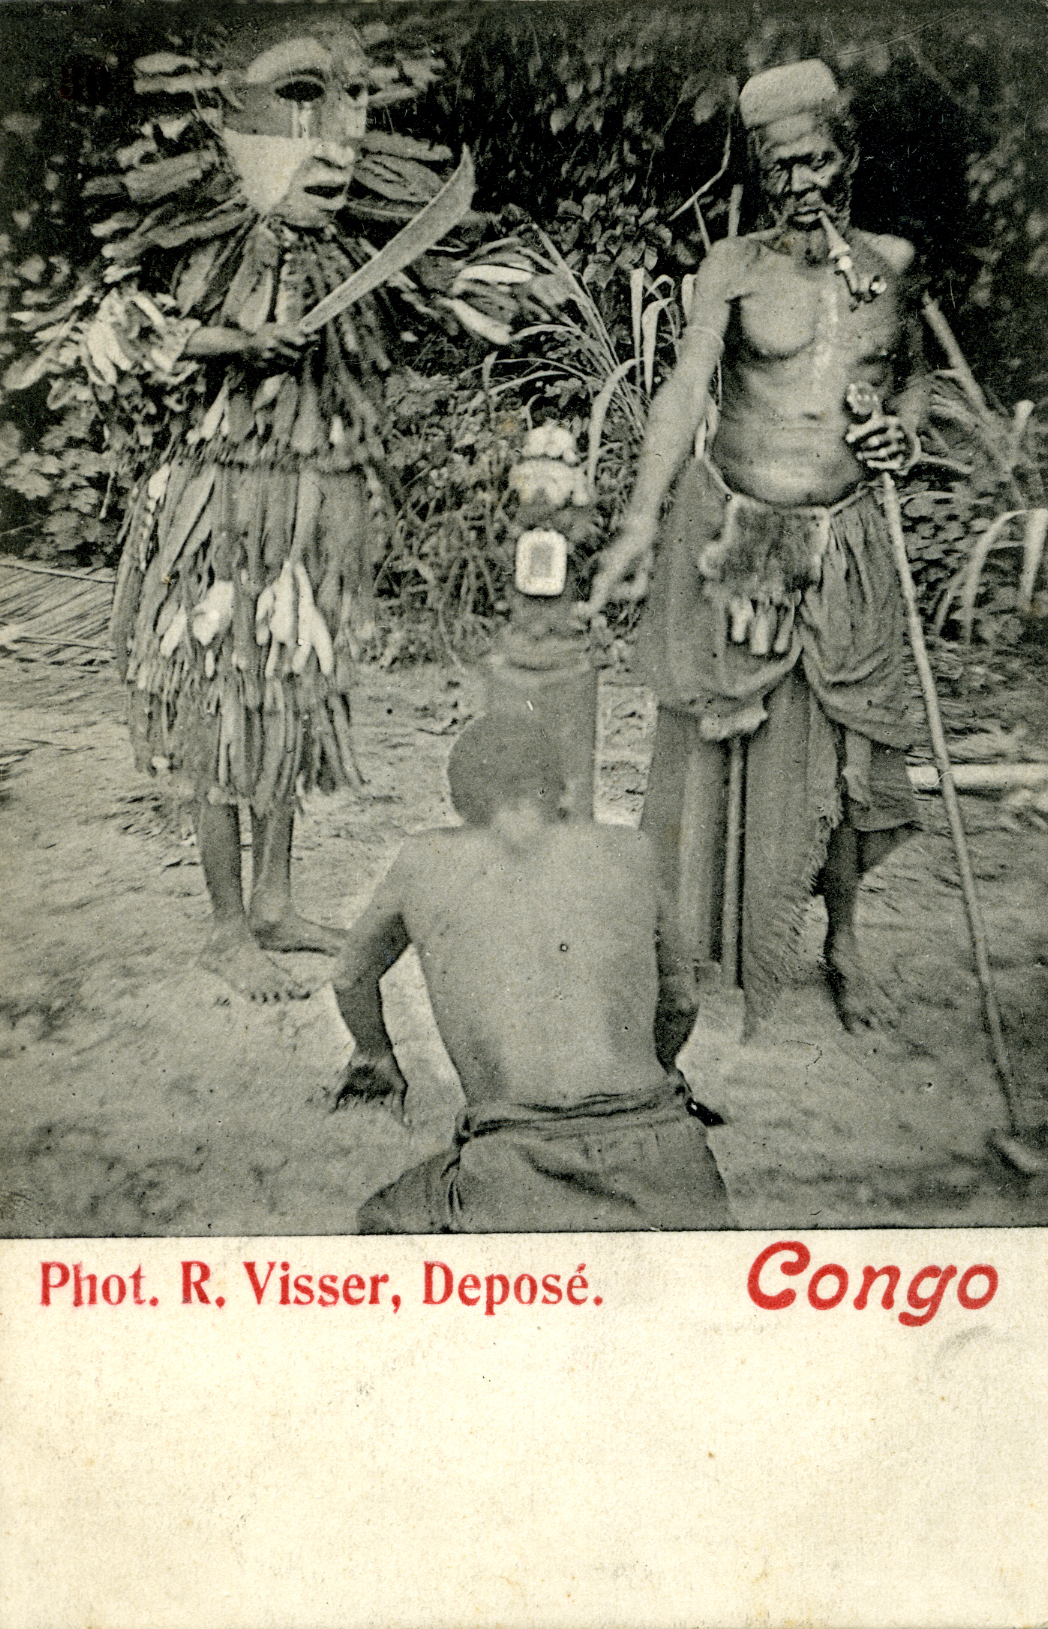 robert-visser-vili-mask-field-photo-postcard-congo